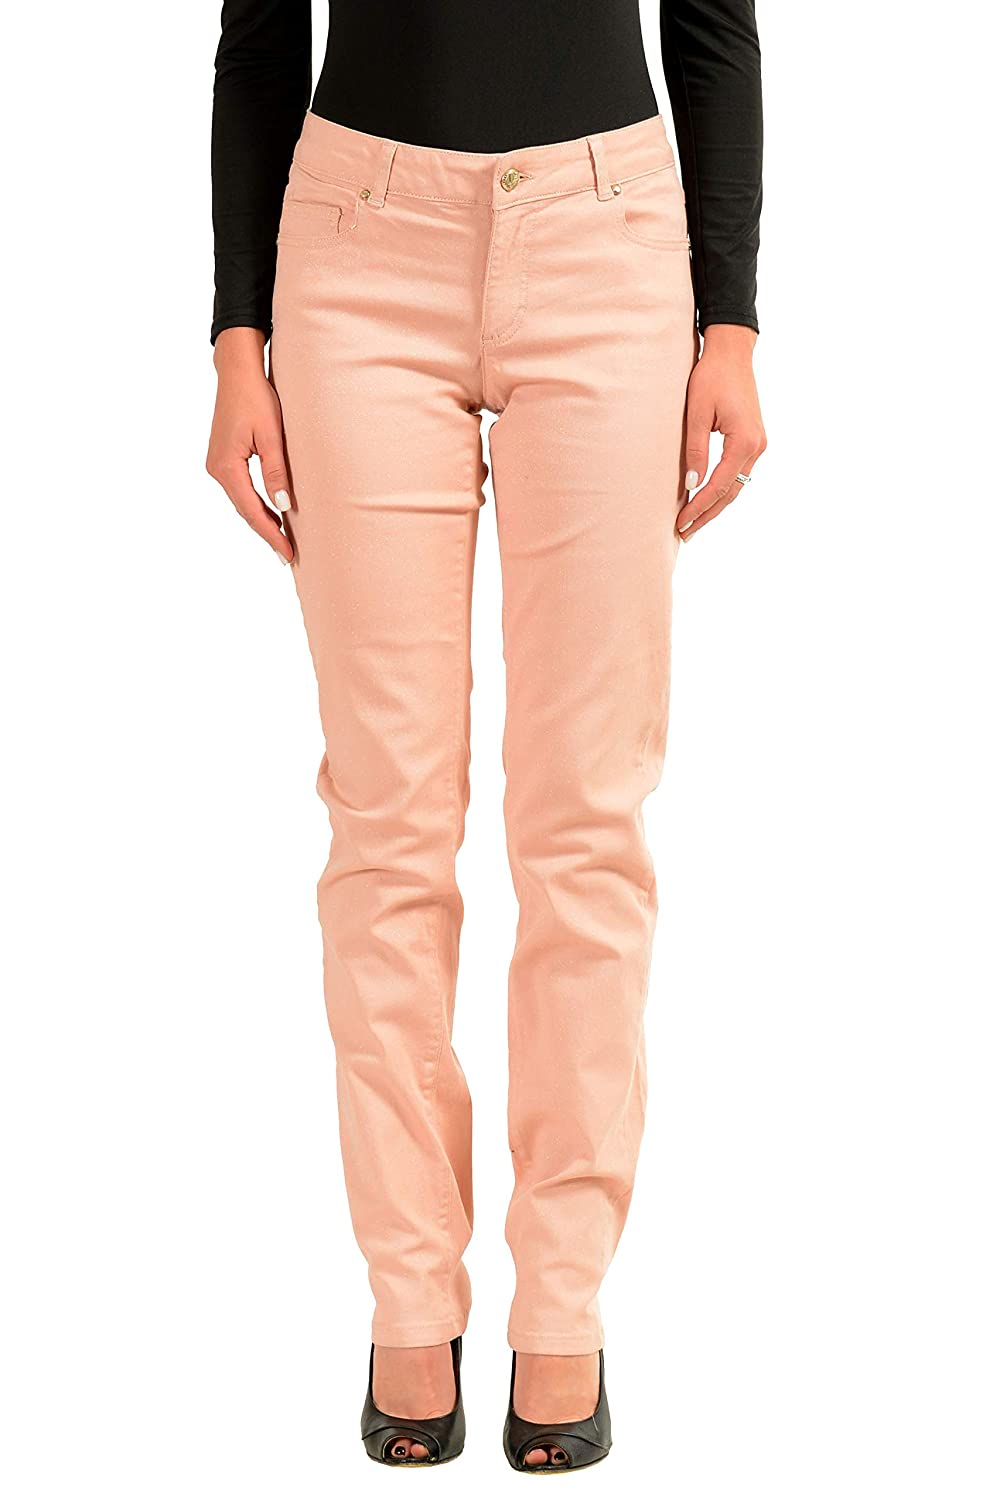 Versace Jeans Sparkling Pink Womens Skinny Jeans Sz US 5 IT 41